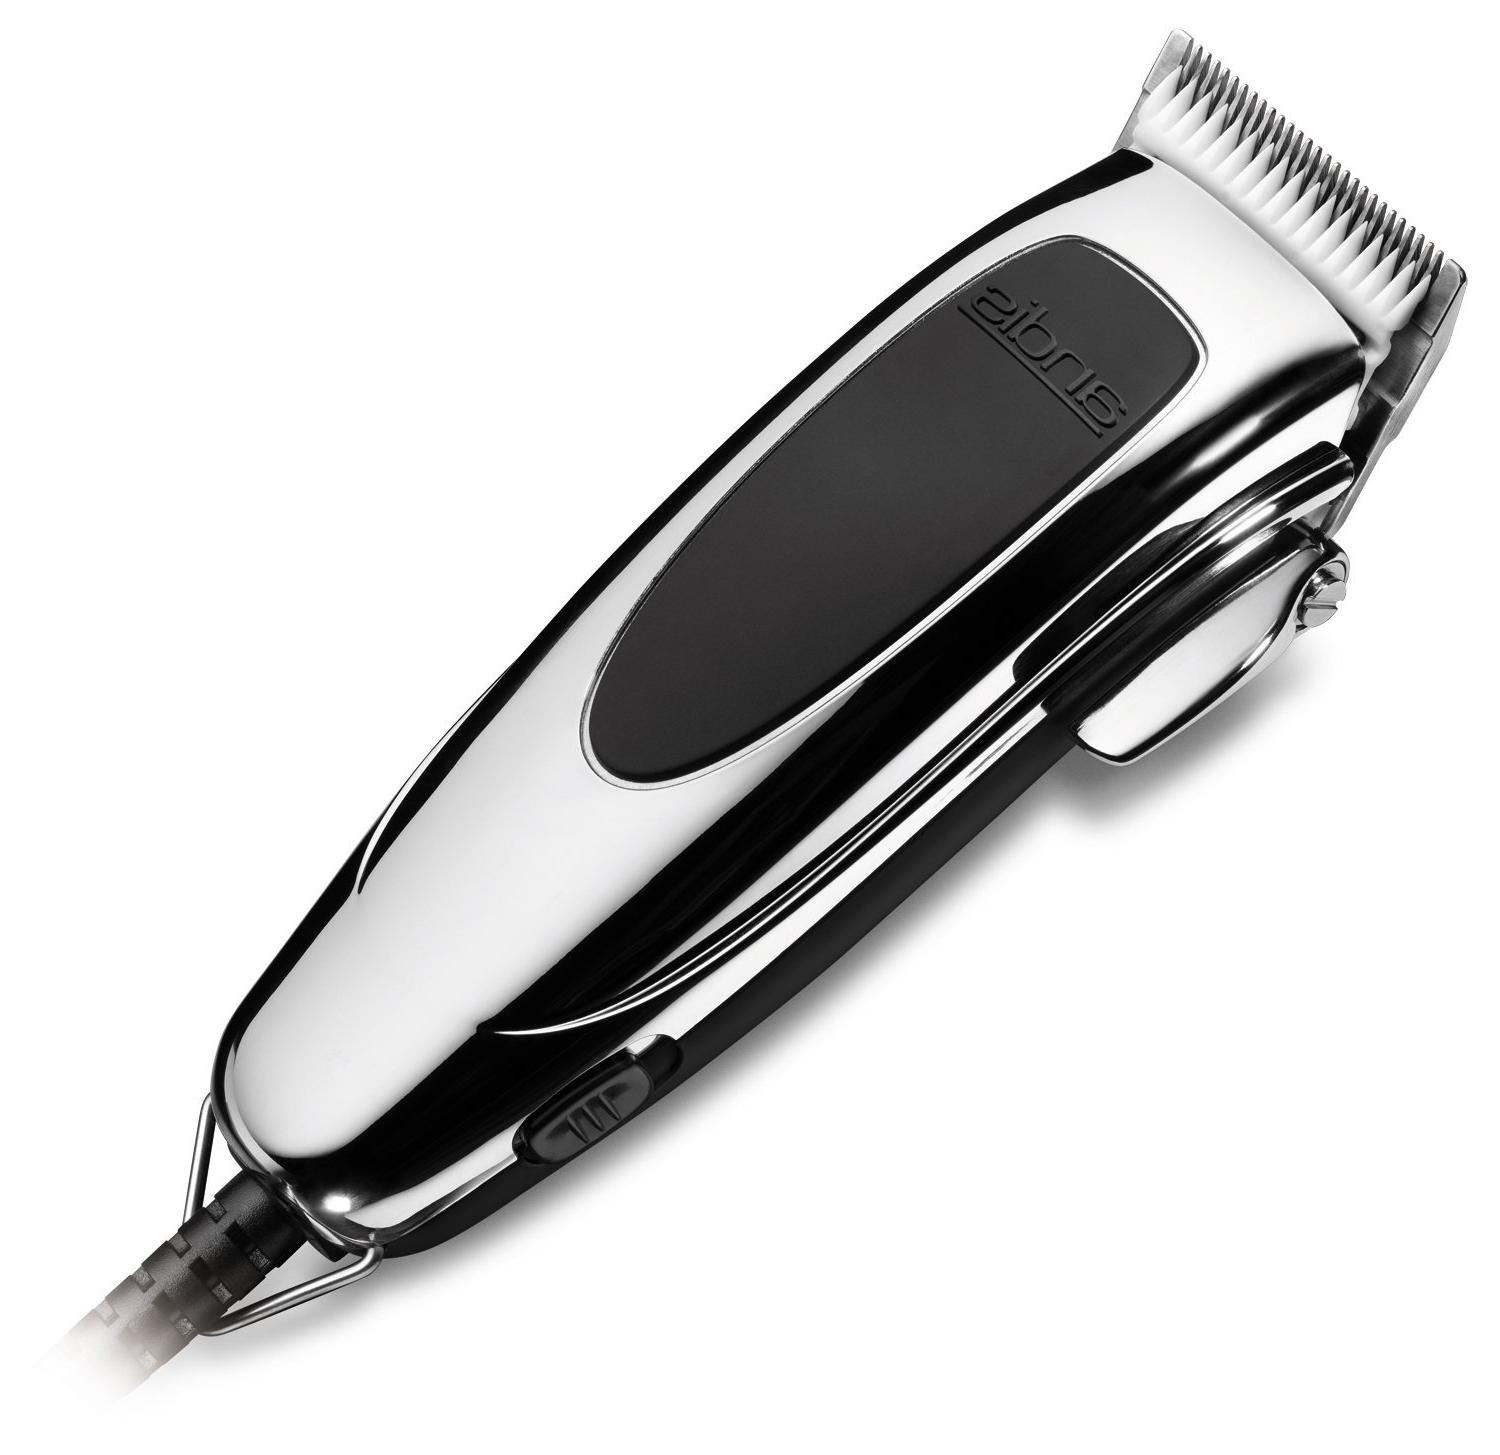 Barber electric clippers clipart vector b w graphic library stock Best HD Barber Clippers Clip Art Cdr » Free Vector Art, Images ... graphic library stock